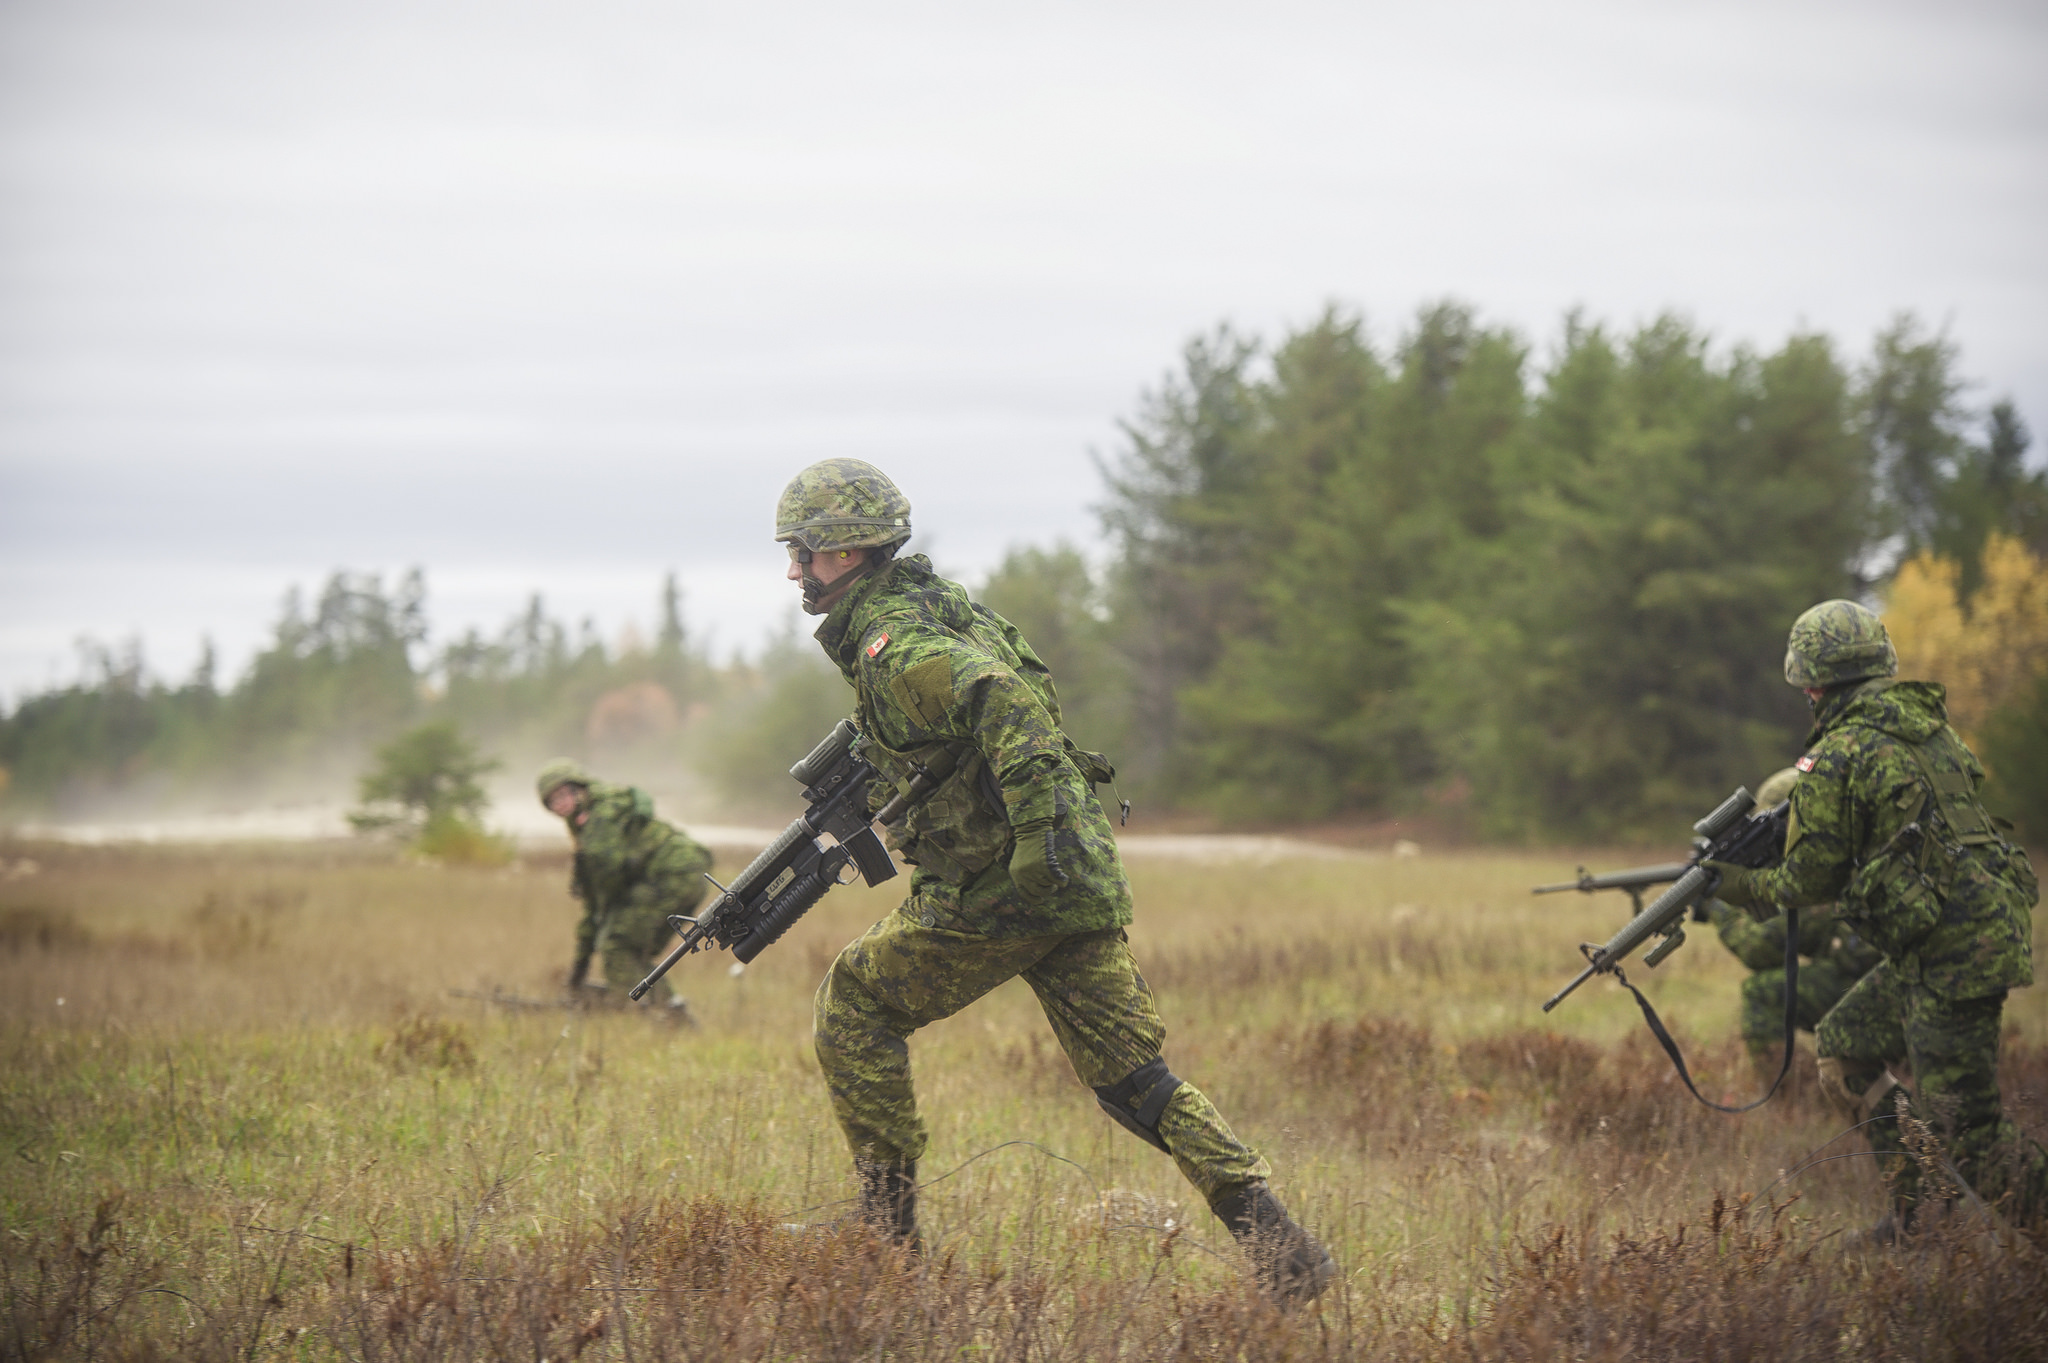 Infantry soldiers from The Cameron Highlanders of Ottawa (Duke of Edinburgh's Own) and Governor Generals Foot Guards conduct live fire and movement training in Petawawa on 21-23 October 2016.